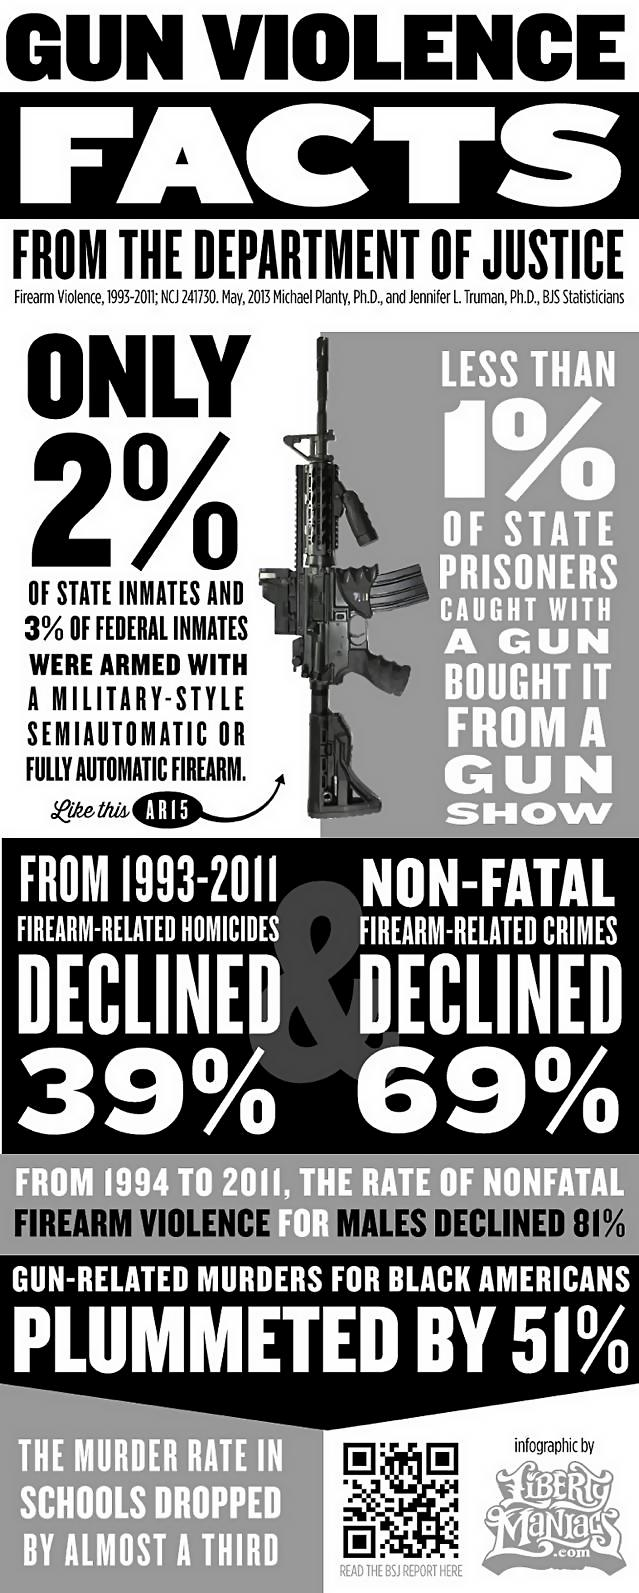 Facts About Gun Violence